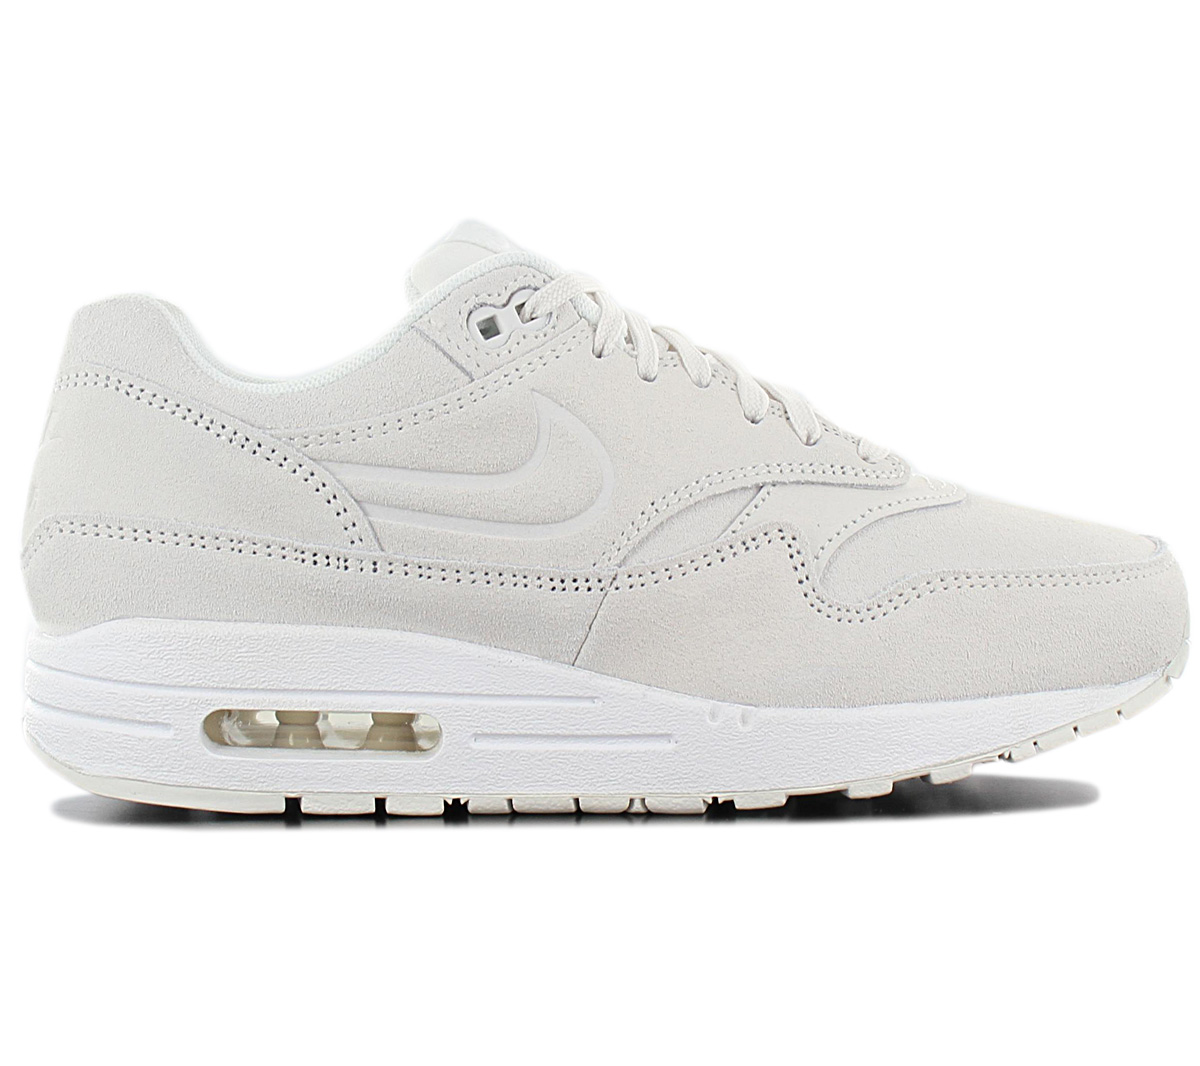 Details about Nike Air Max 1 Premium Women's Sneakers 454746 111 Leather Gray Shoes New